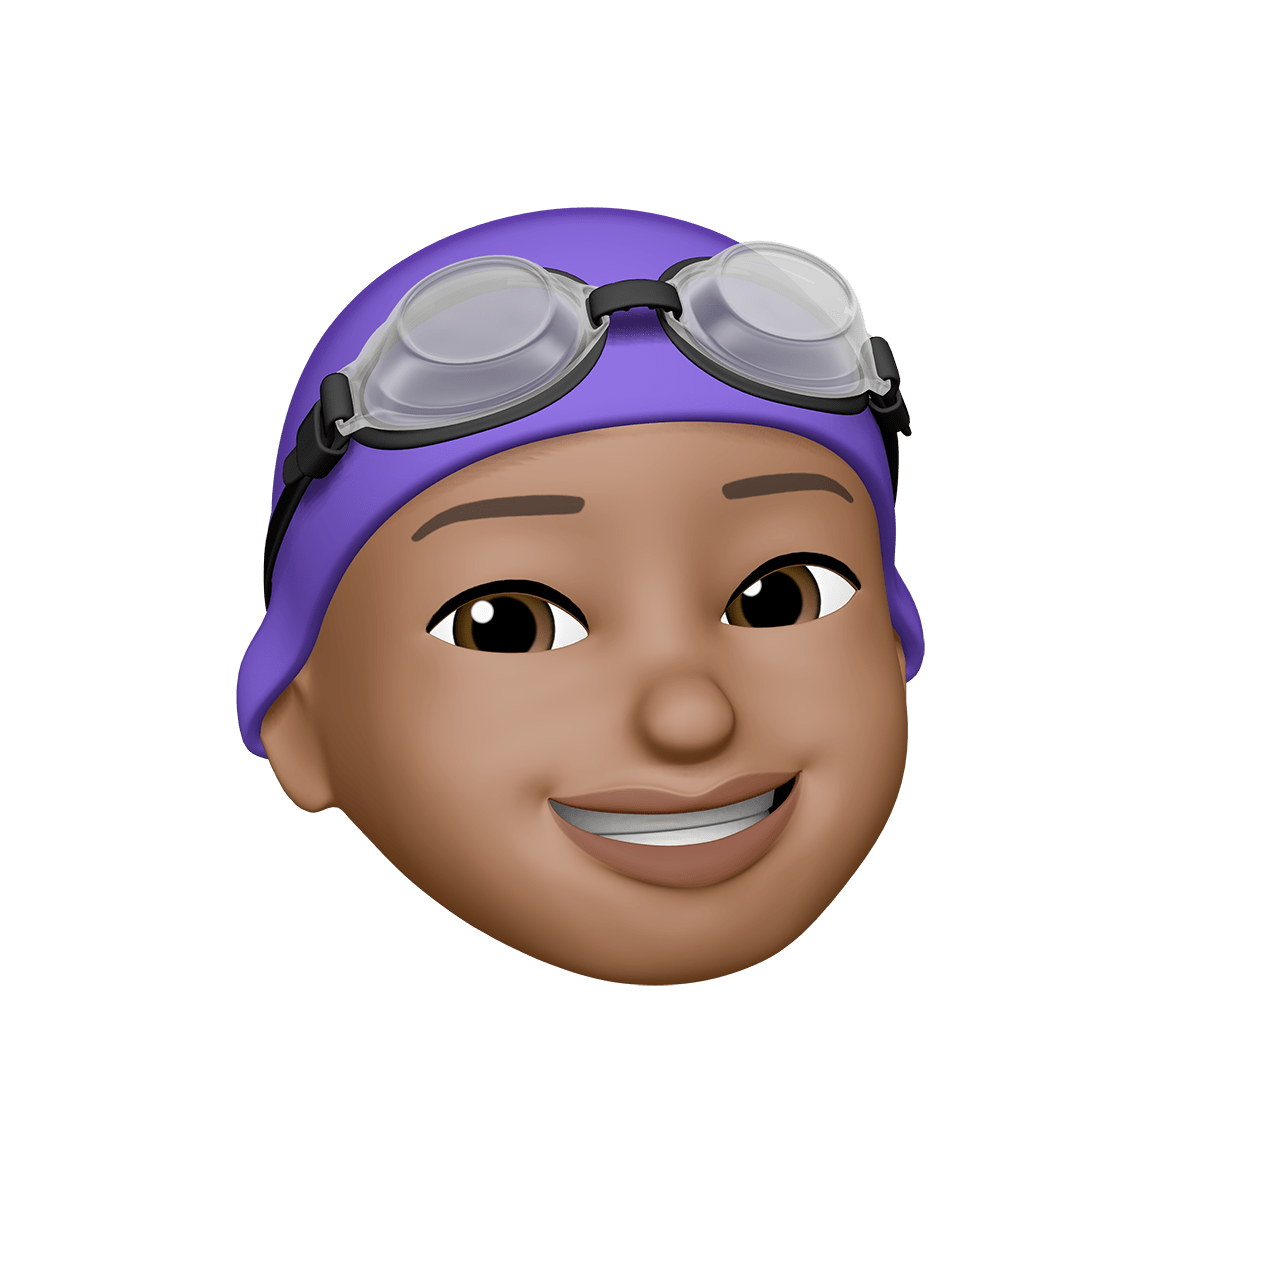 apple emoji memoji update iphone ipad watch face masks bubble tea tamale transgender symbol